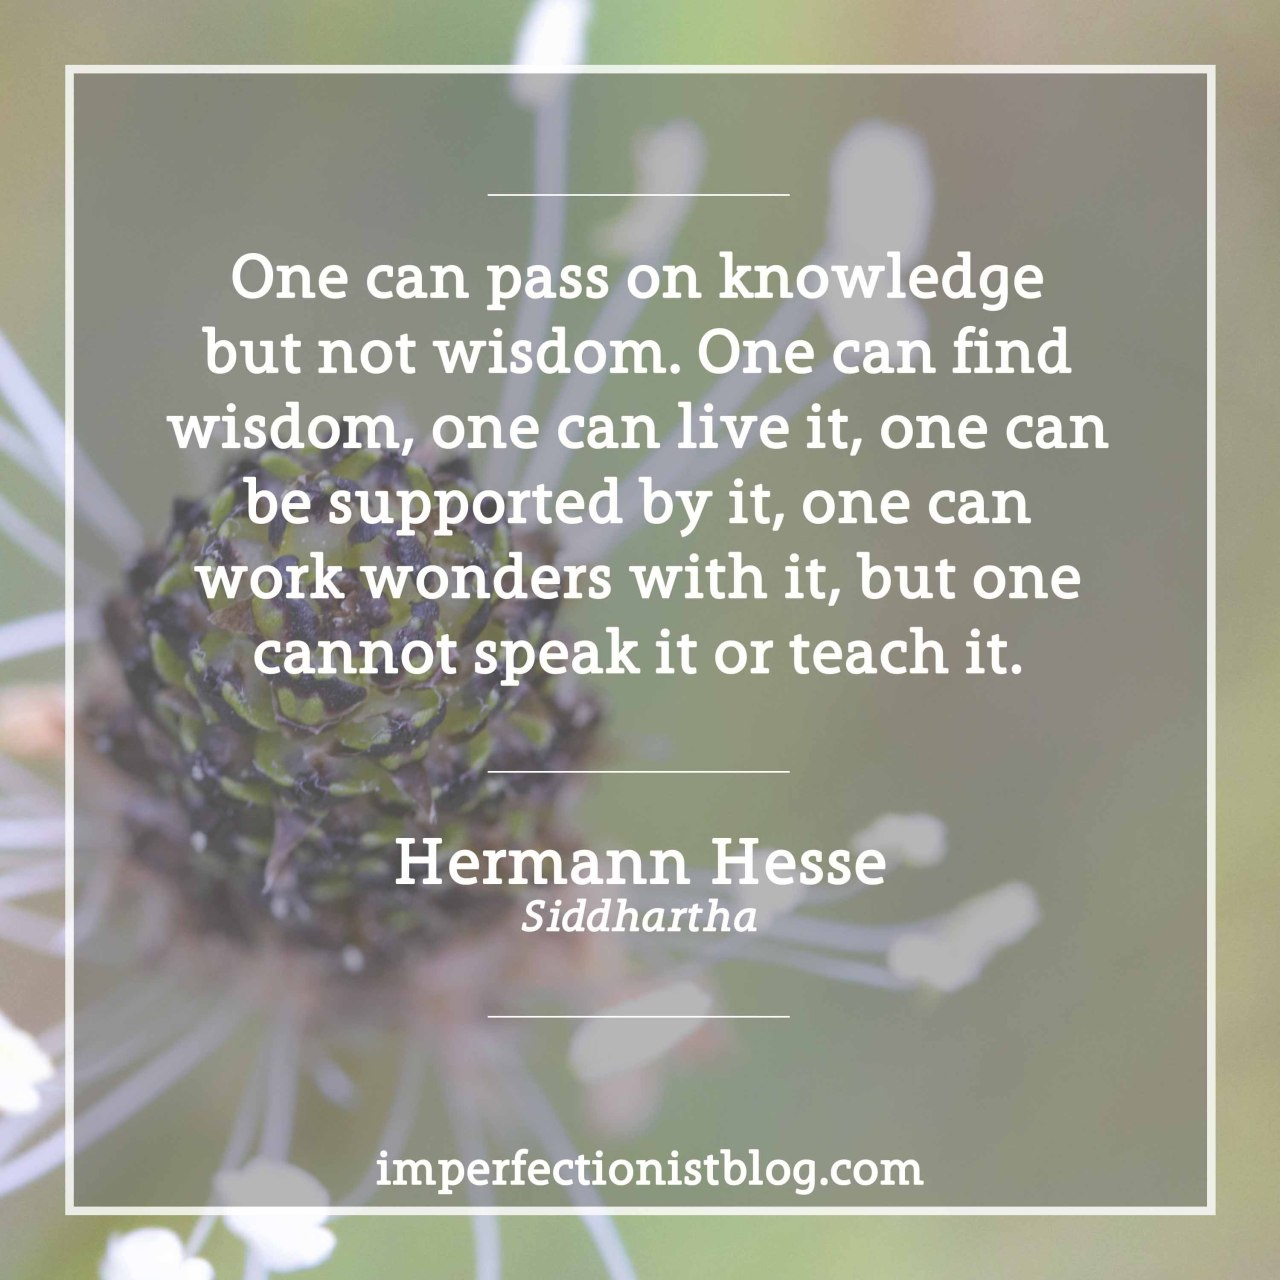 "imperfectionistbooks:""One can pass on knowledge but not wisdom. One can find wisdom, one can live it, one can be supported by it, one can work wonders with it, but one cannot speak it or teach it."" -Hermann Hesse (Siddhartha)"